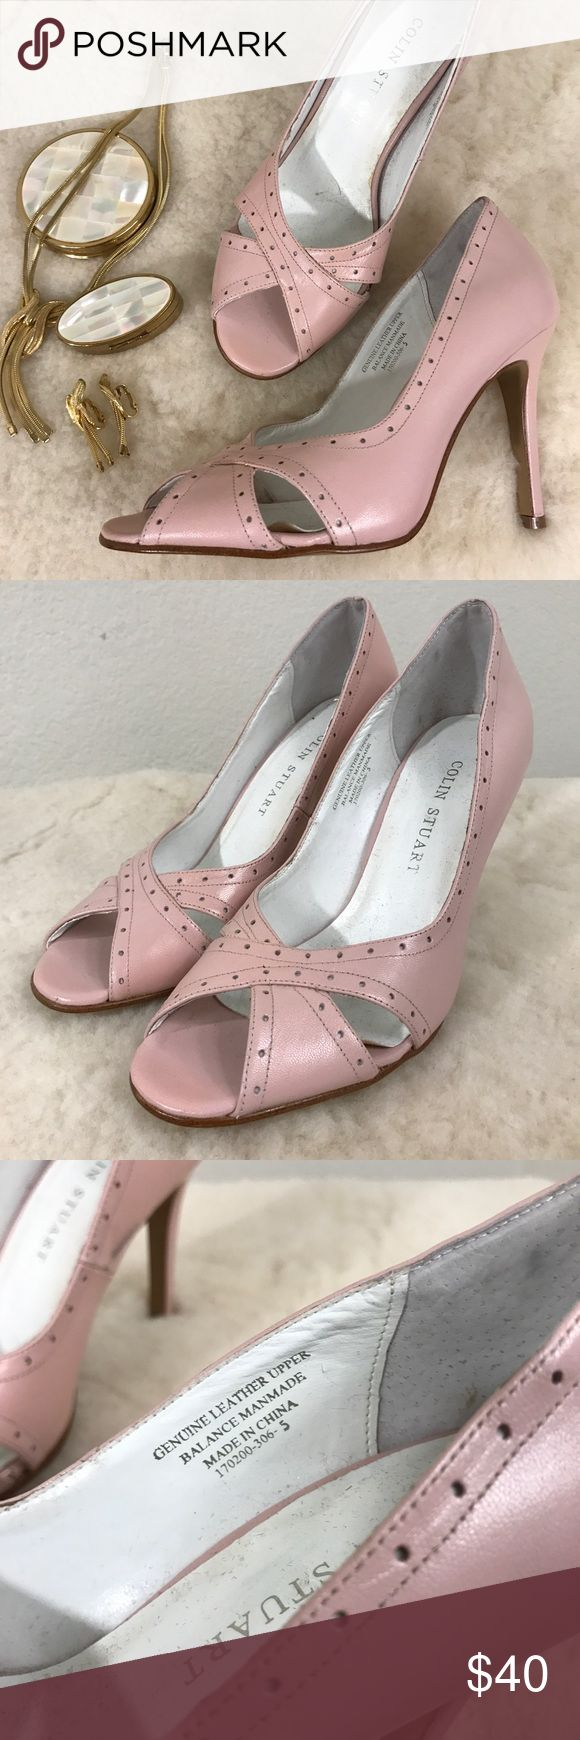 COLIN STUART BLUSH PUMP SHOES Leather SZ 5 COLIN STUART VICTORIA SECRET BLUSH PUMP SHOES Leather SZ 5   Please see photos as we do consider them to be a part of the description.   THIS IS SHOES ONLY Colin Stuart Shoes Heels